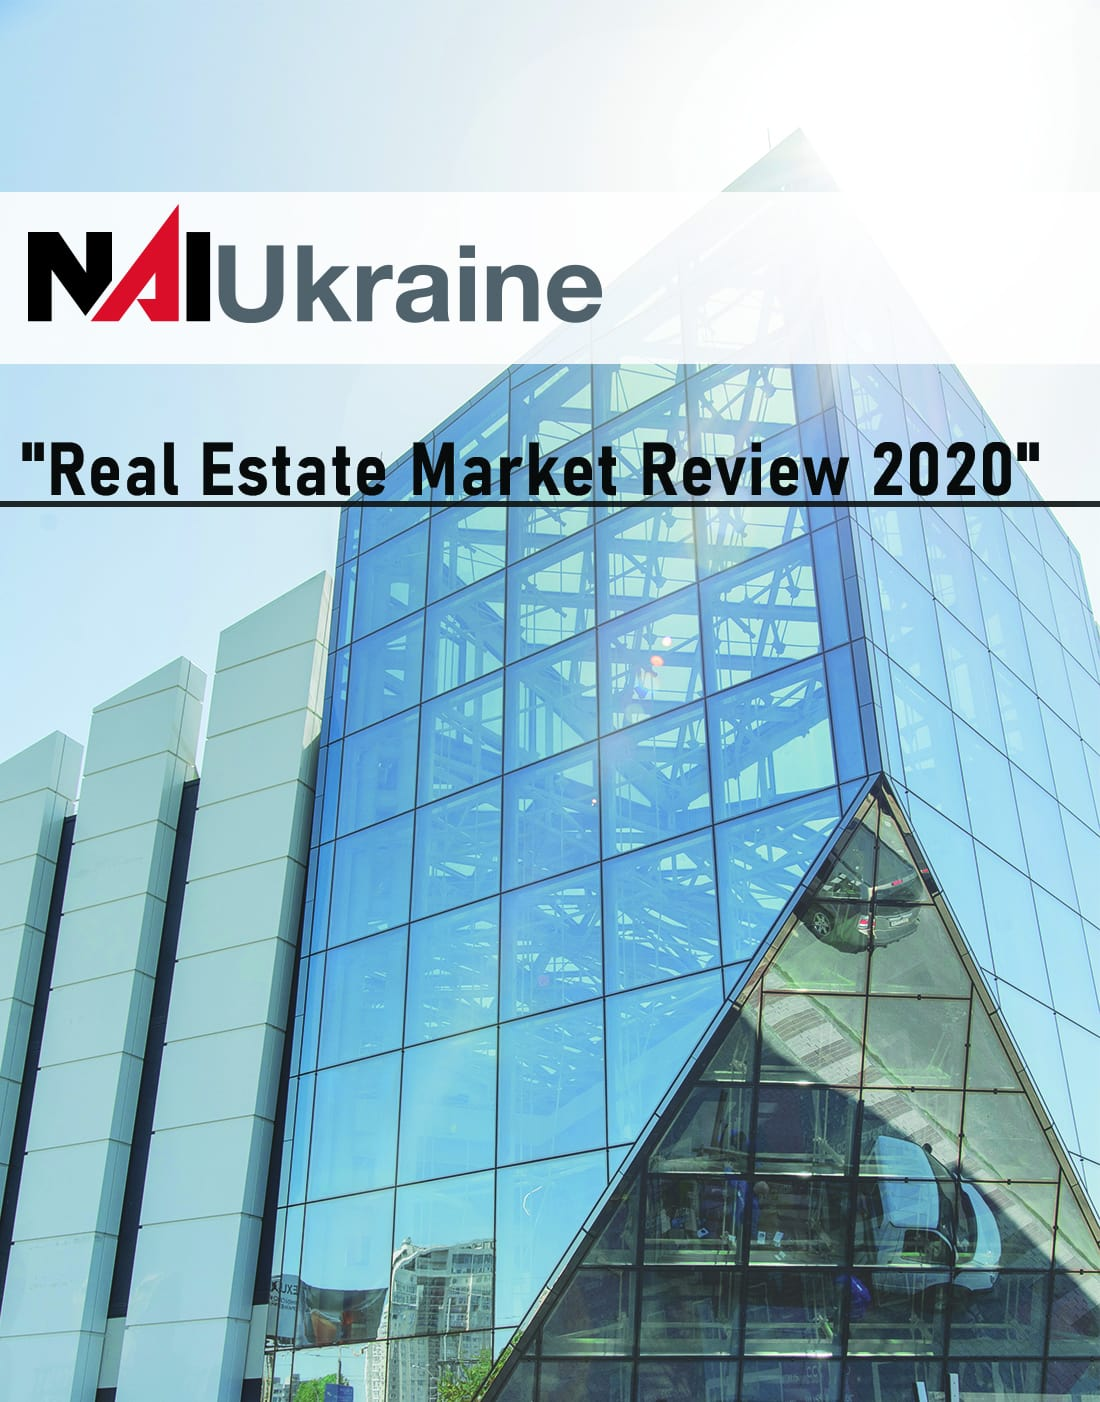 Real Estate Market Review 2020